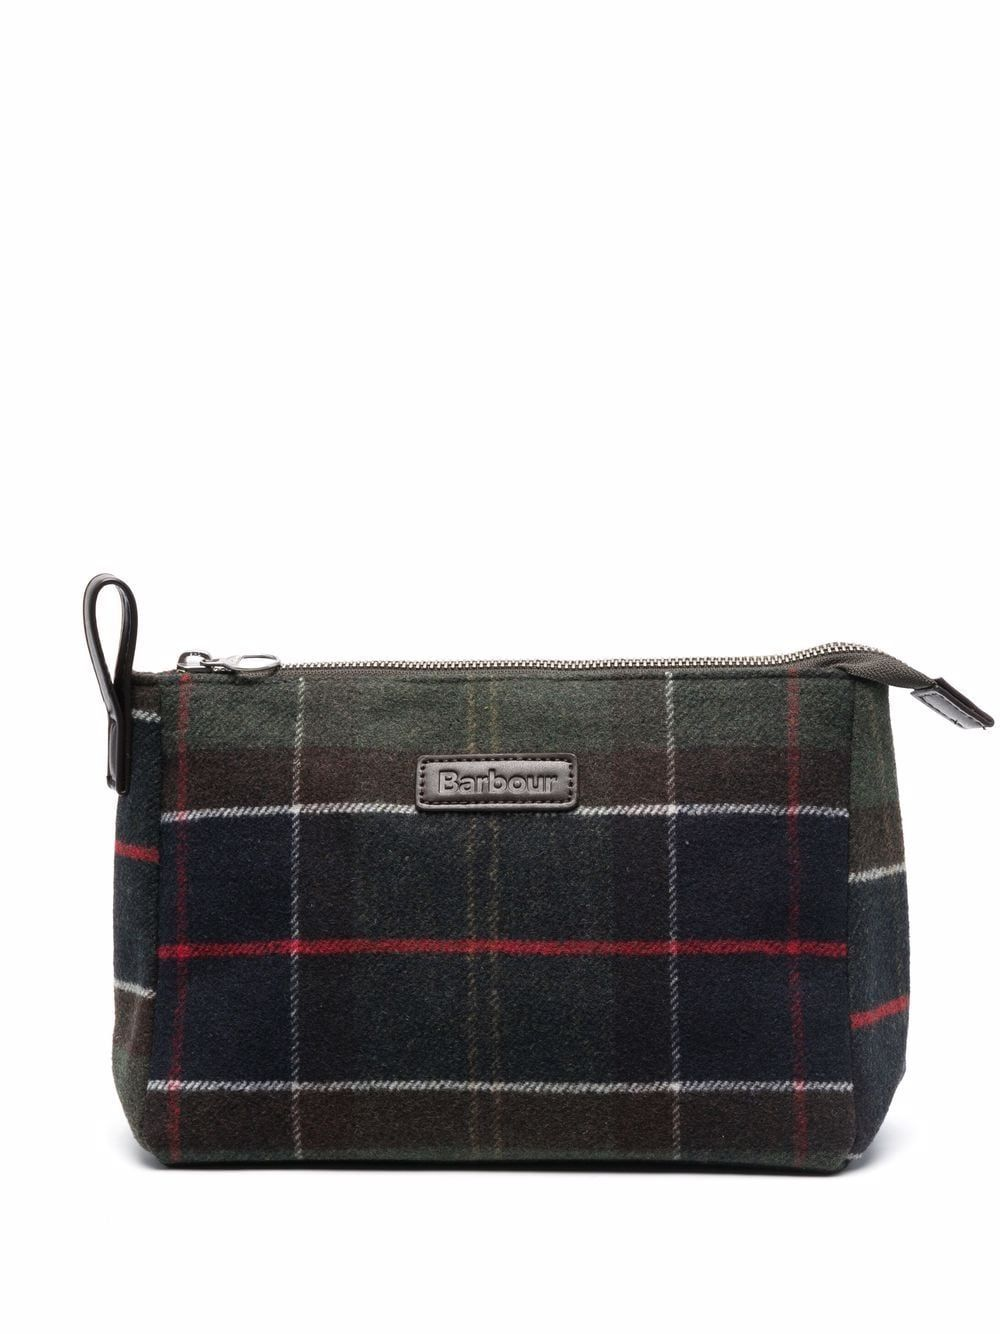 Barbour bags.. green